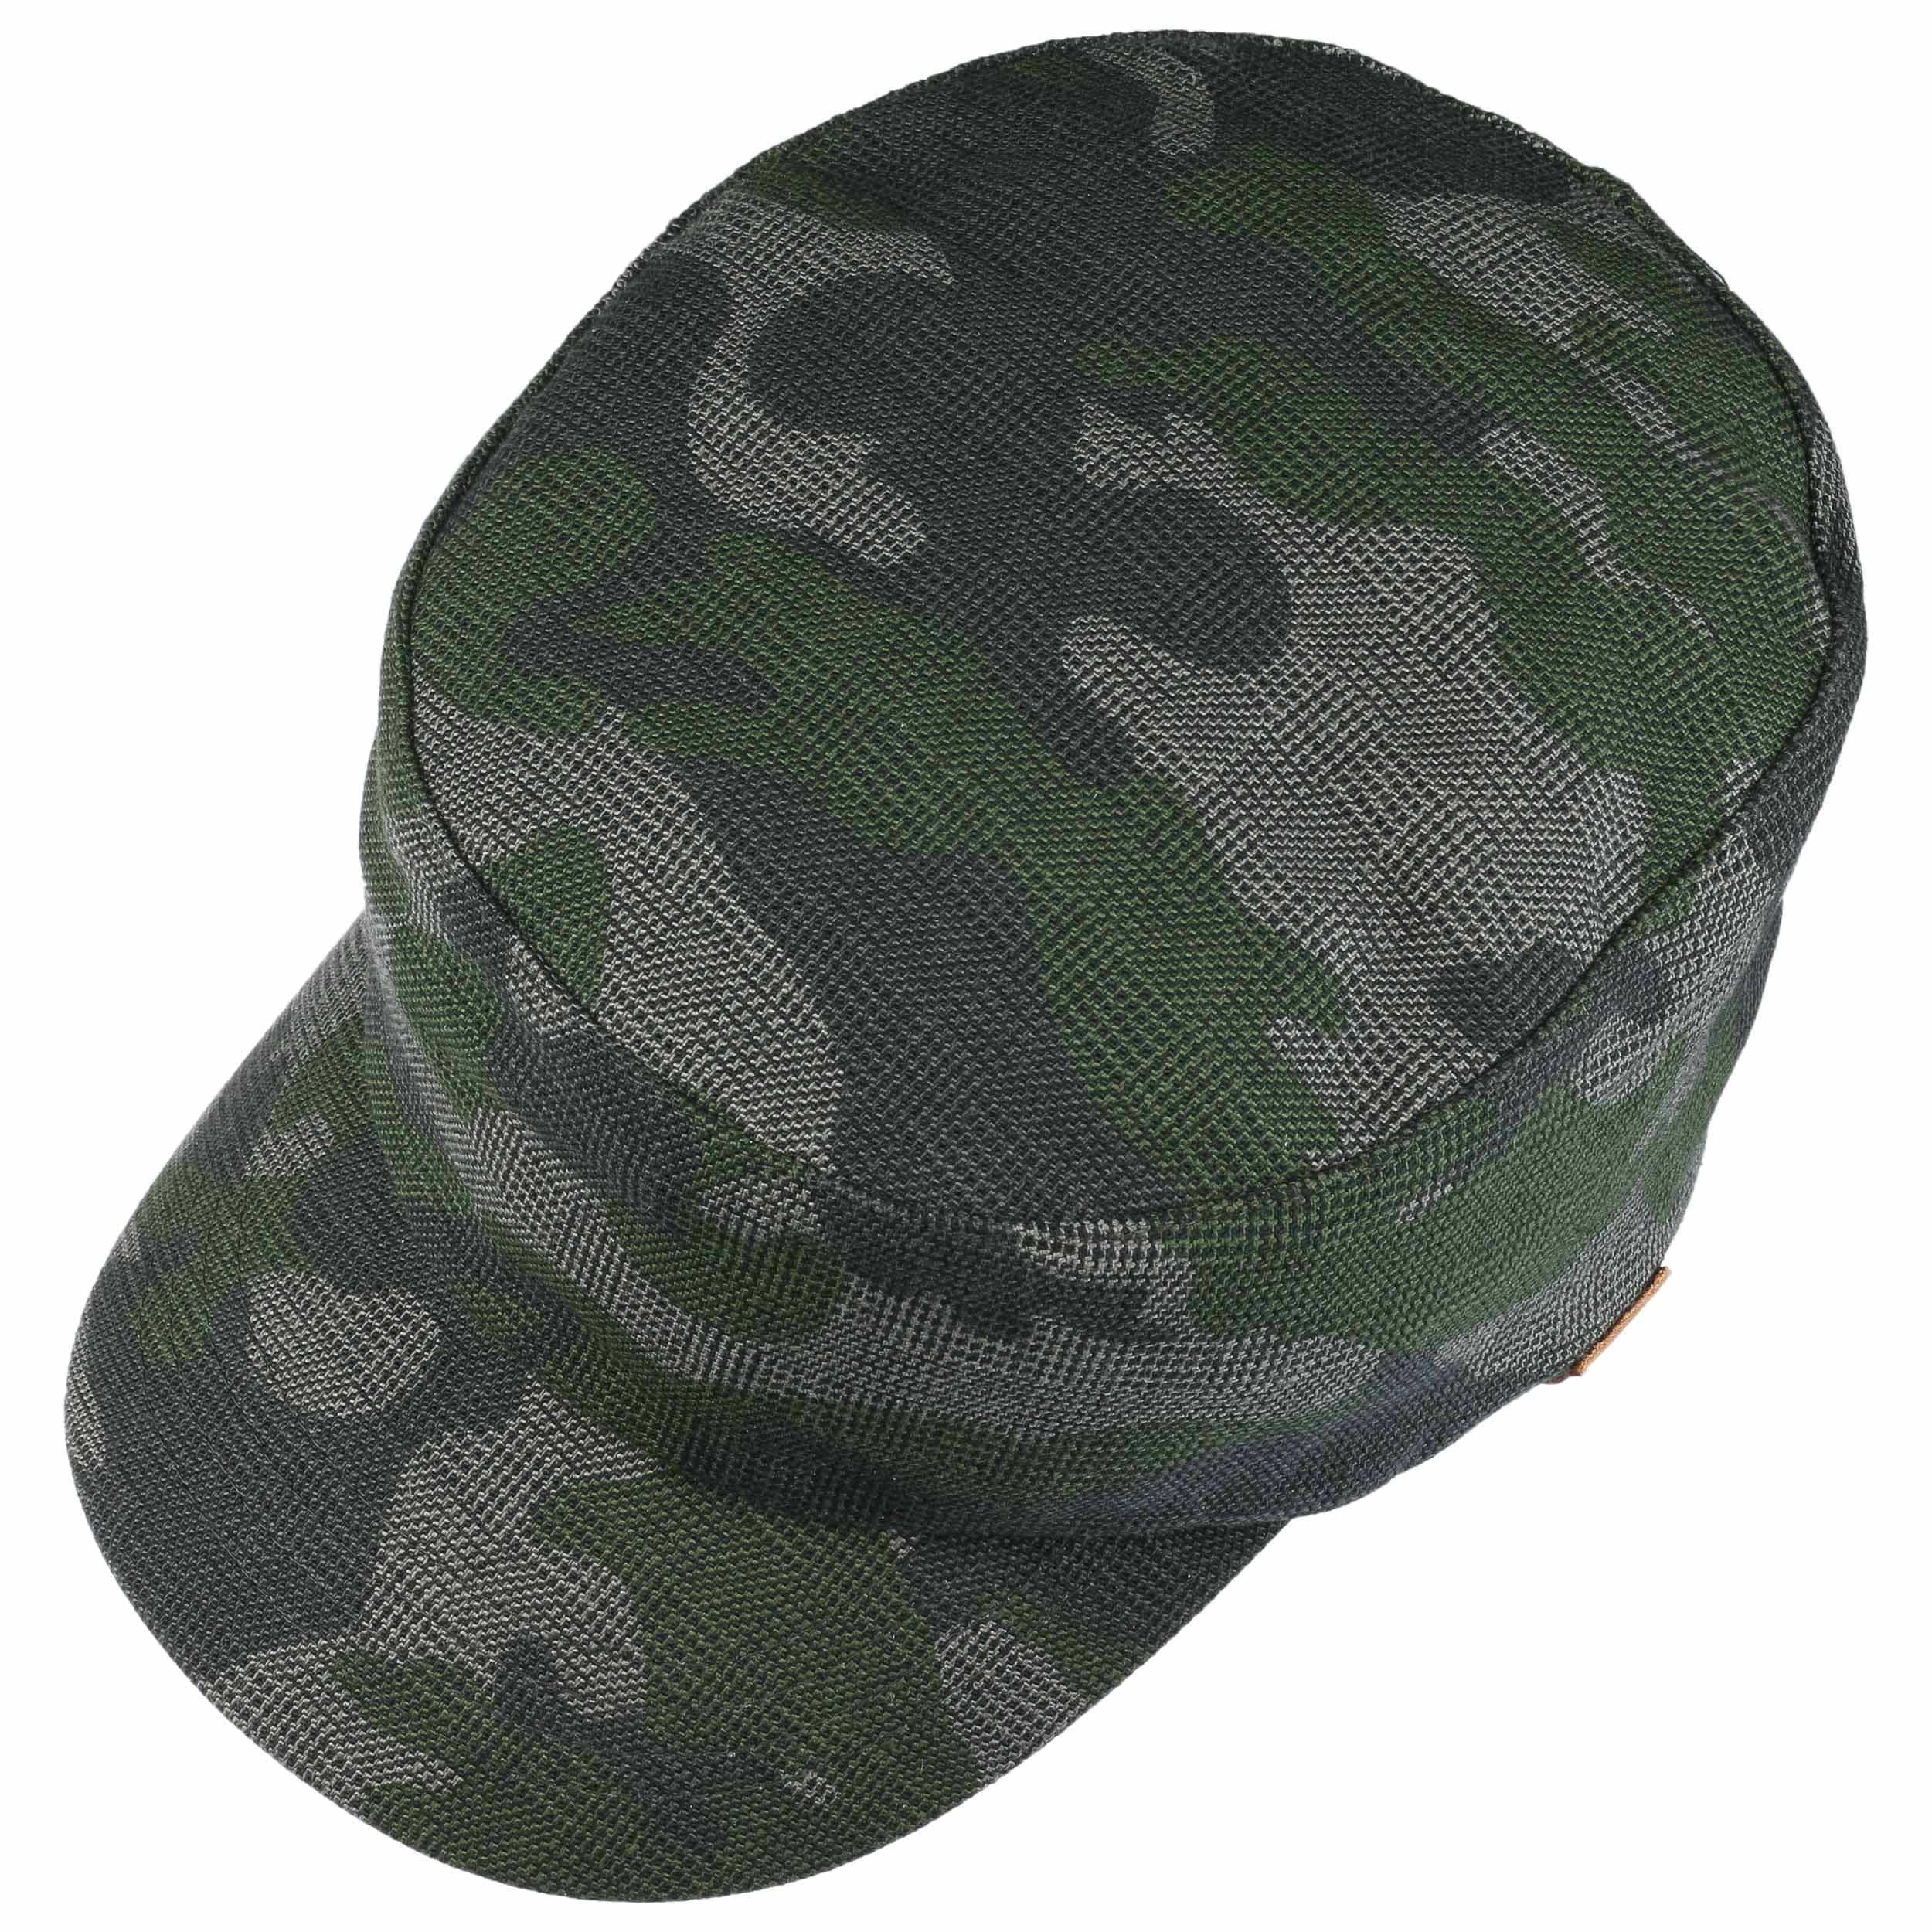 Camouflage Pattern Army Cap by Kangol - camouflage 1 ... d13481fa634